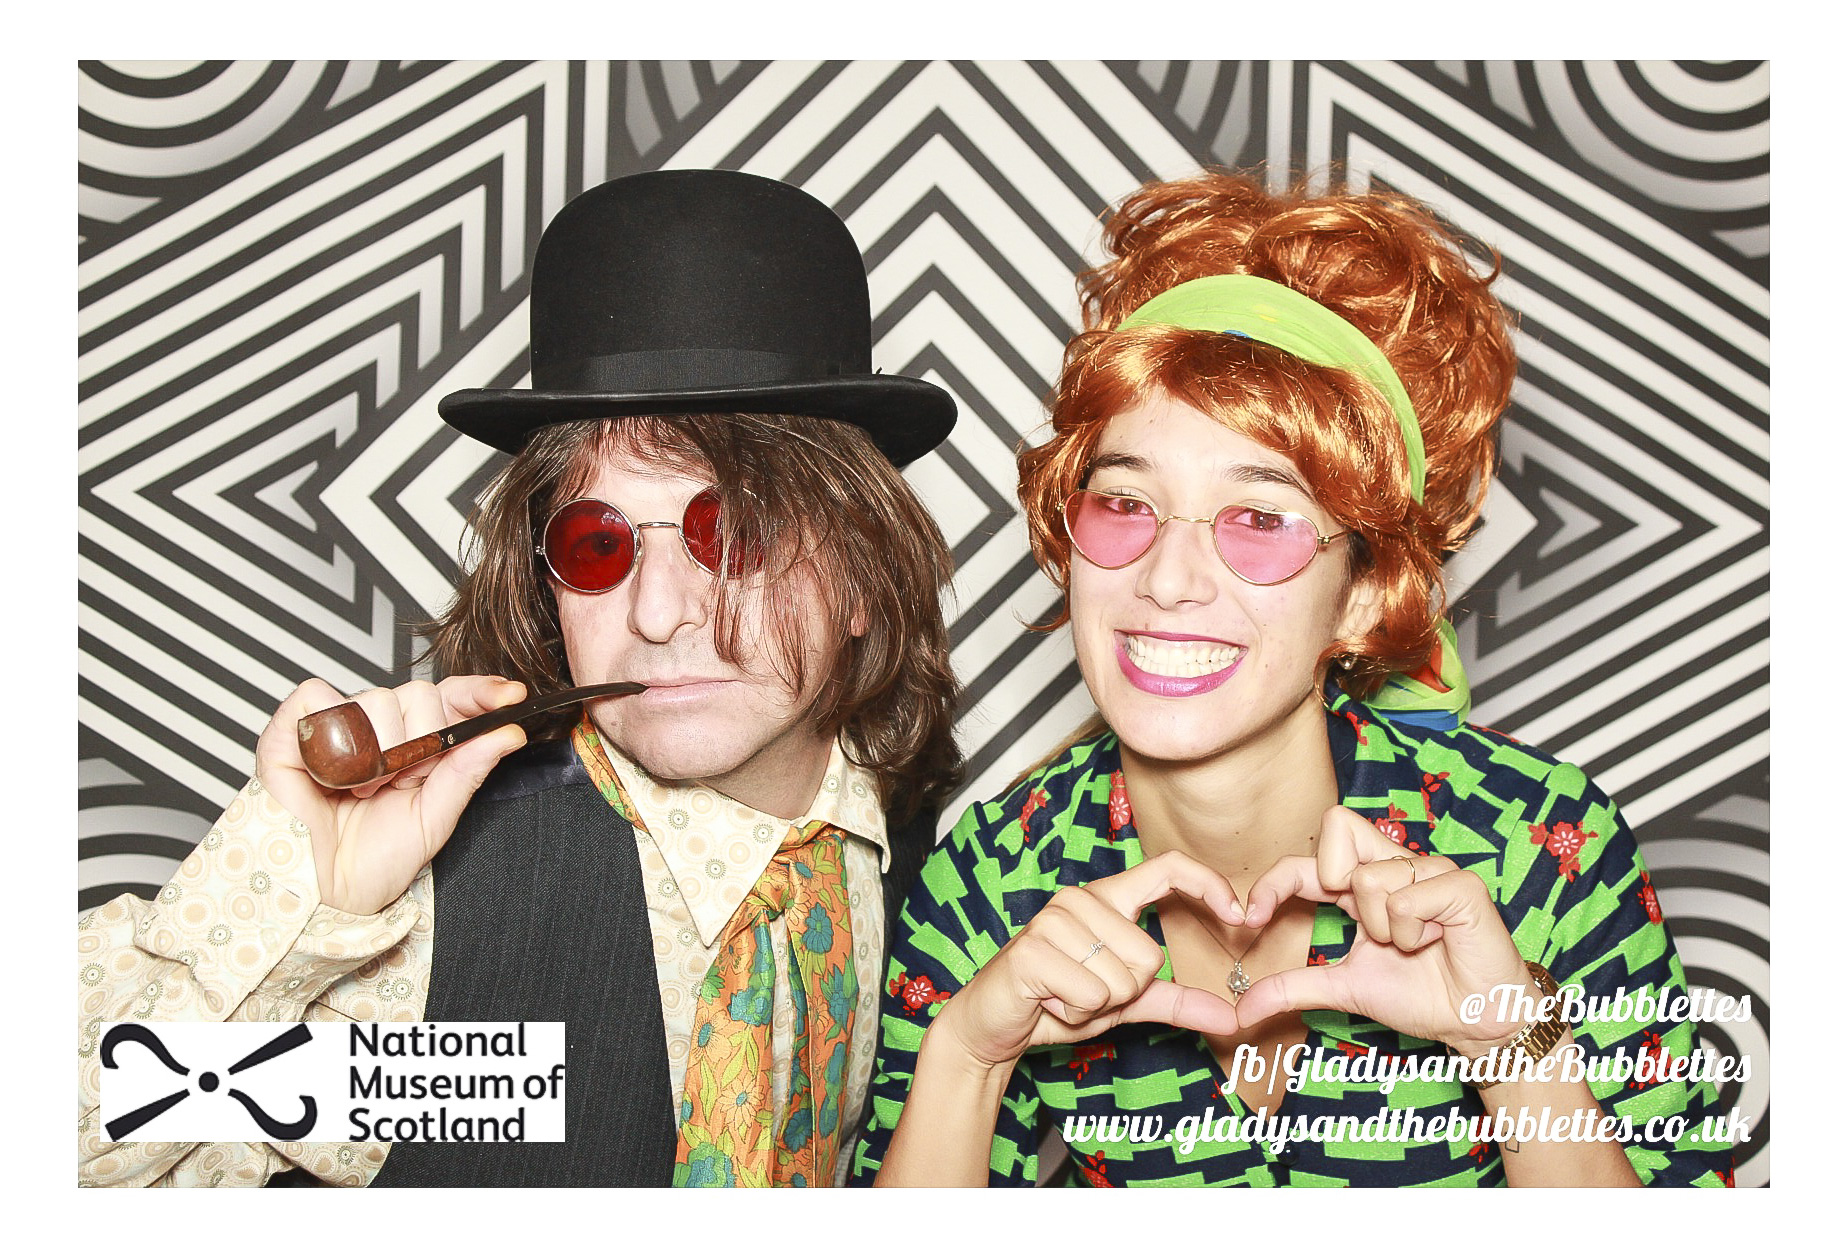 Styling the Nation at The National Museum Gladys & The Bubblettes Photo Booth Nov 2016_16.jpg